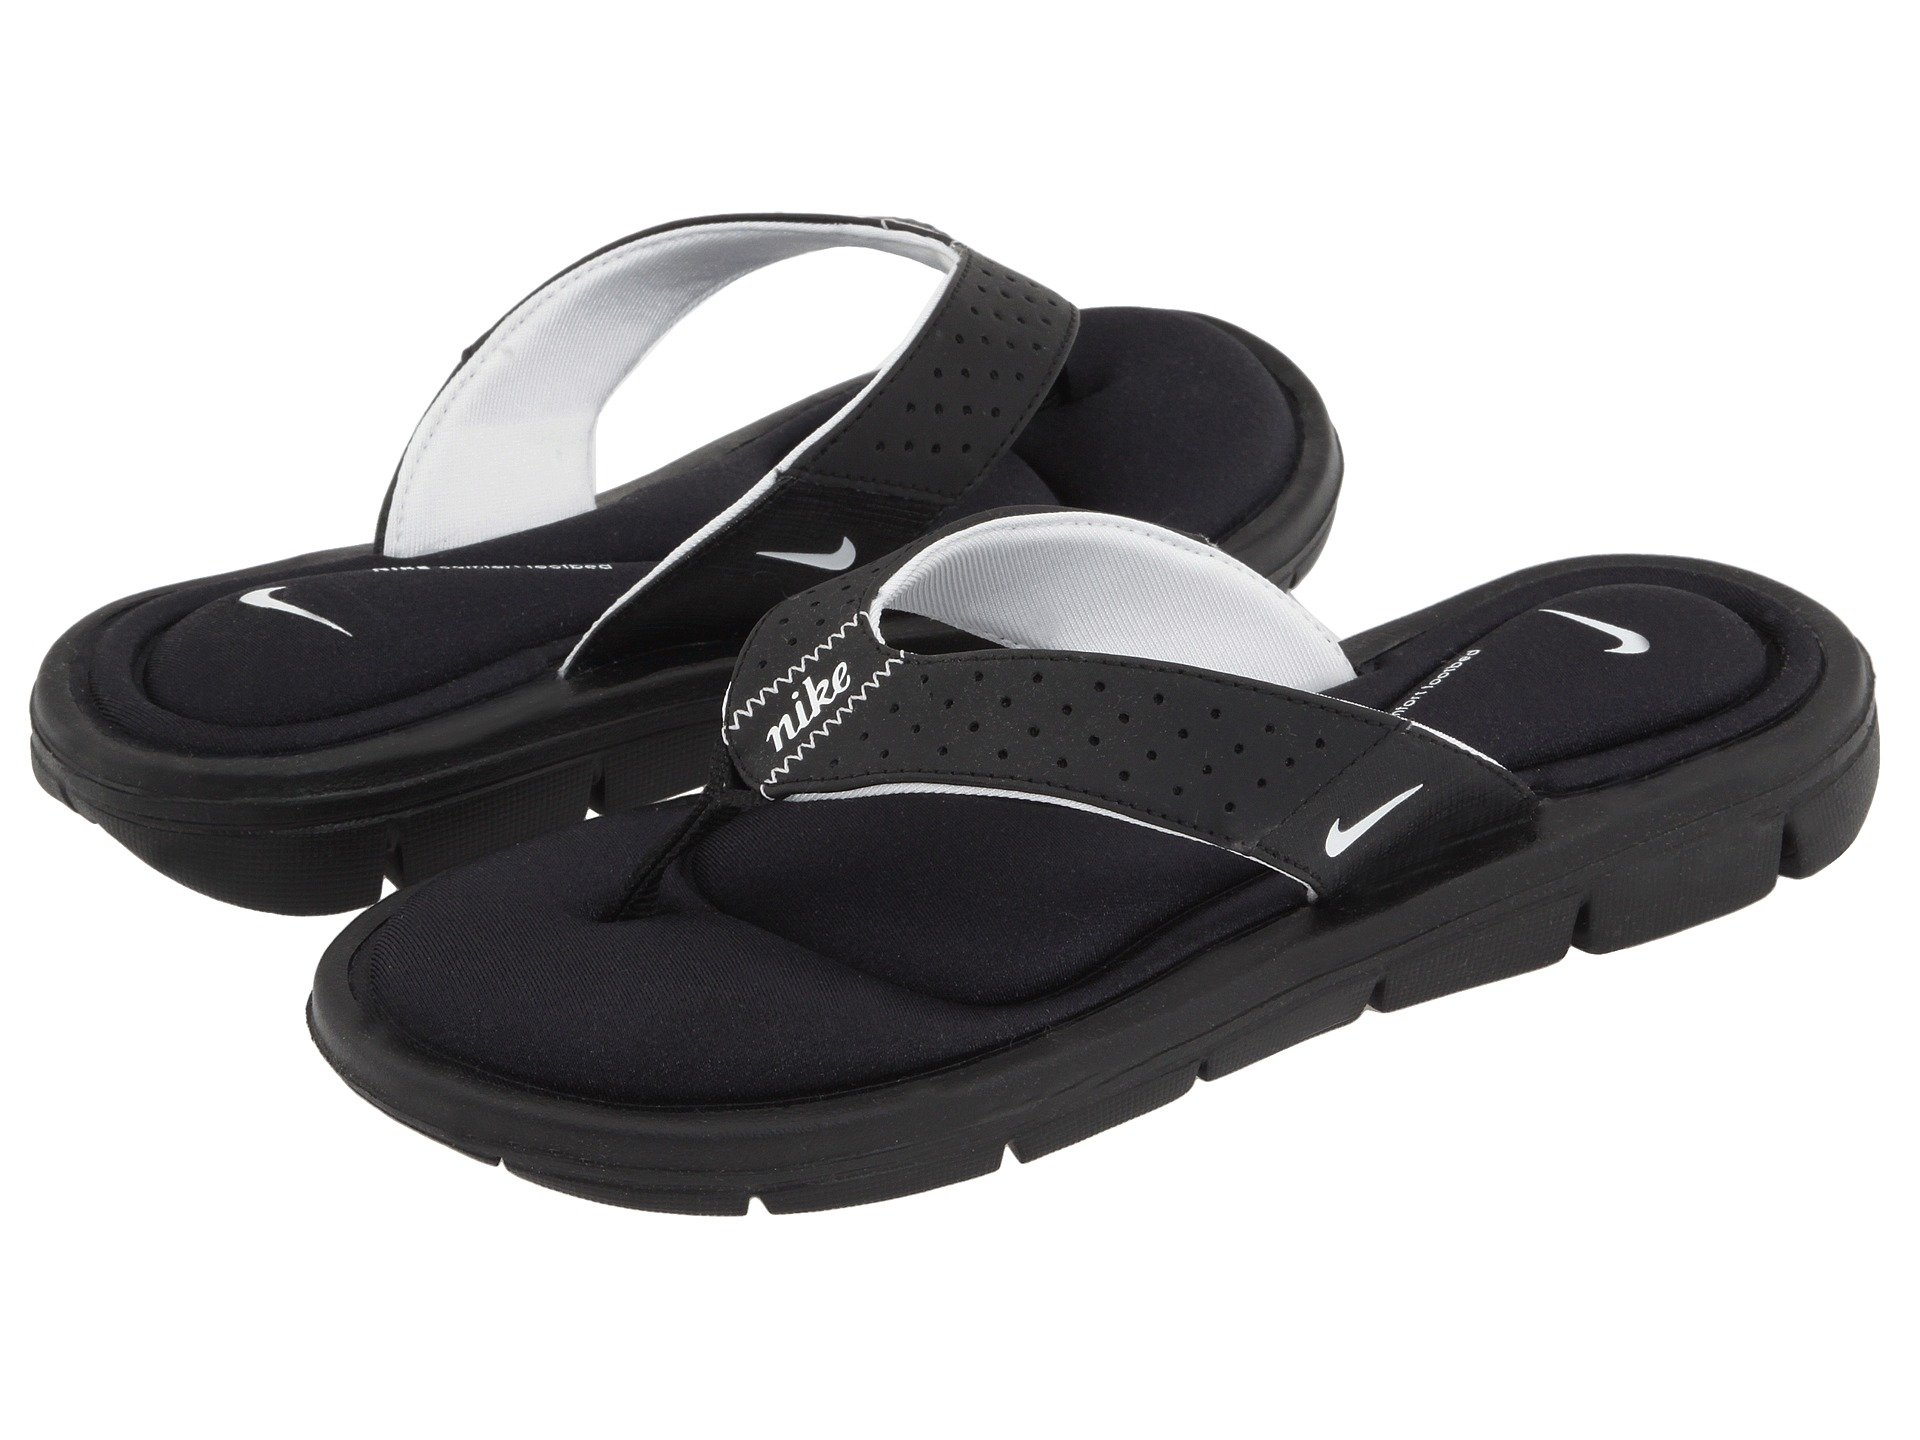 Nike Comfort Thong At 6Pm-2058